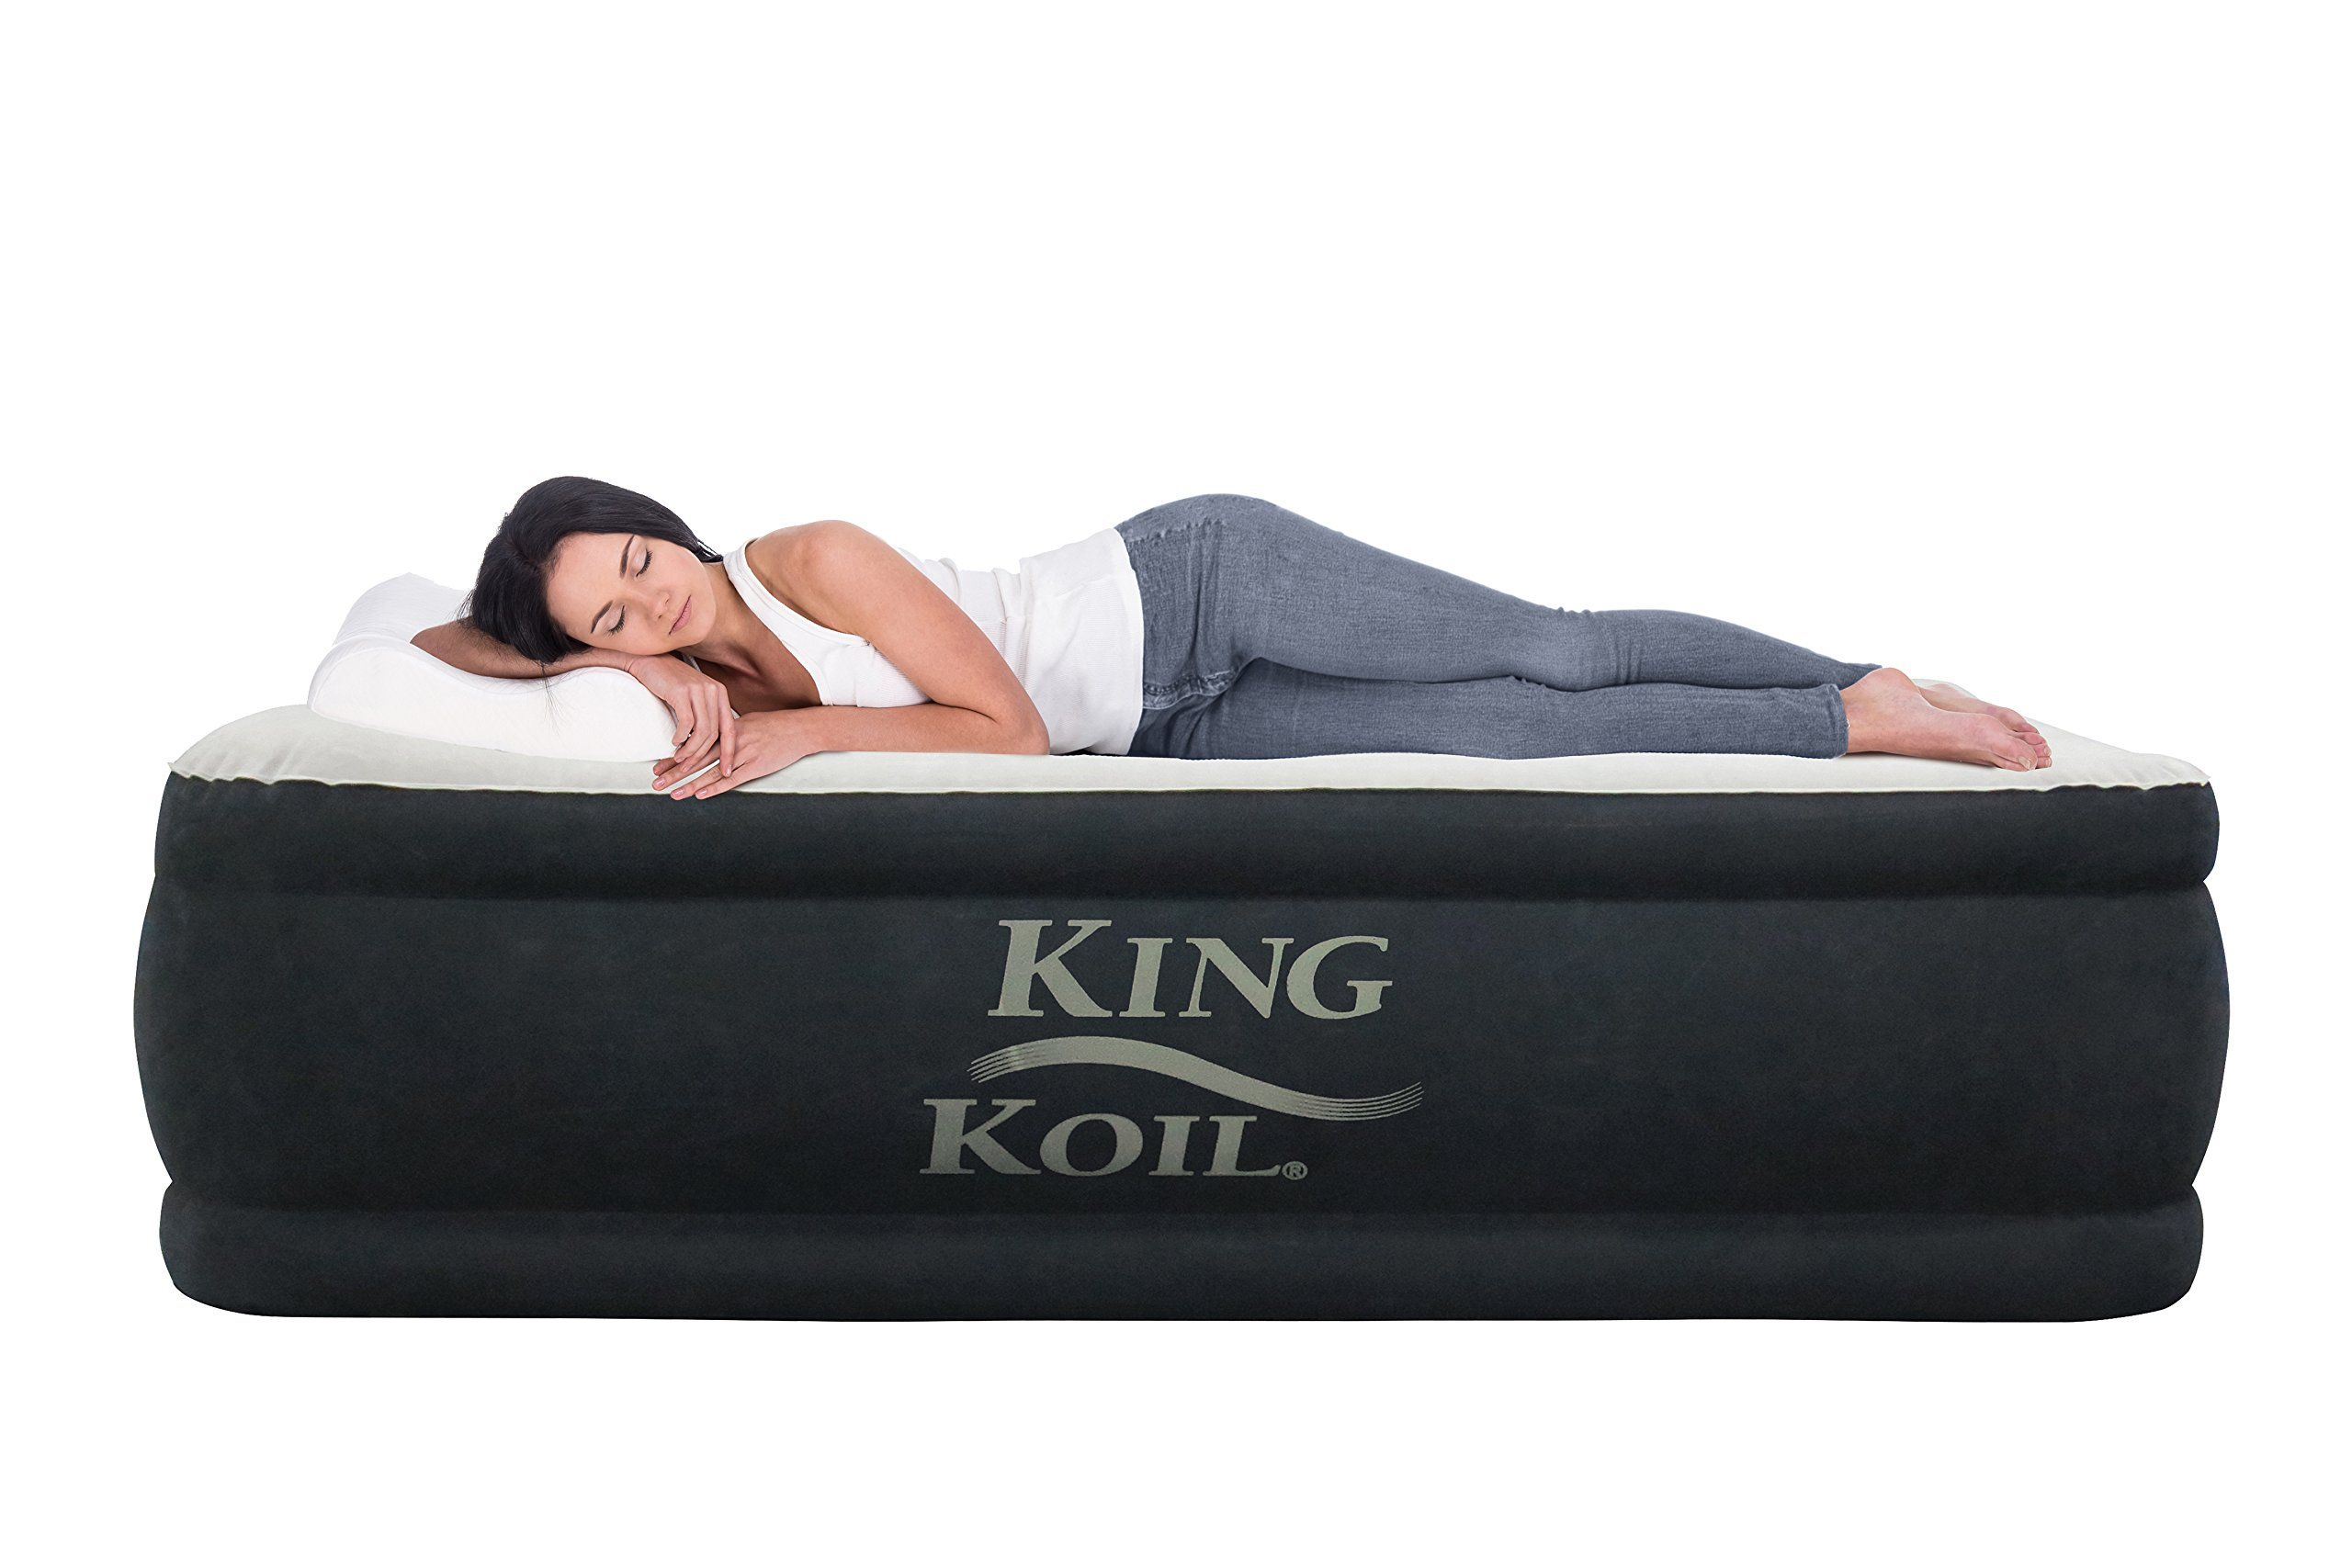 amazon queen beige raised insta dp sports never outdoors air bed mattress with flat pump ca